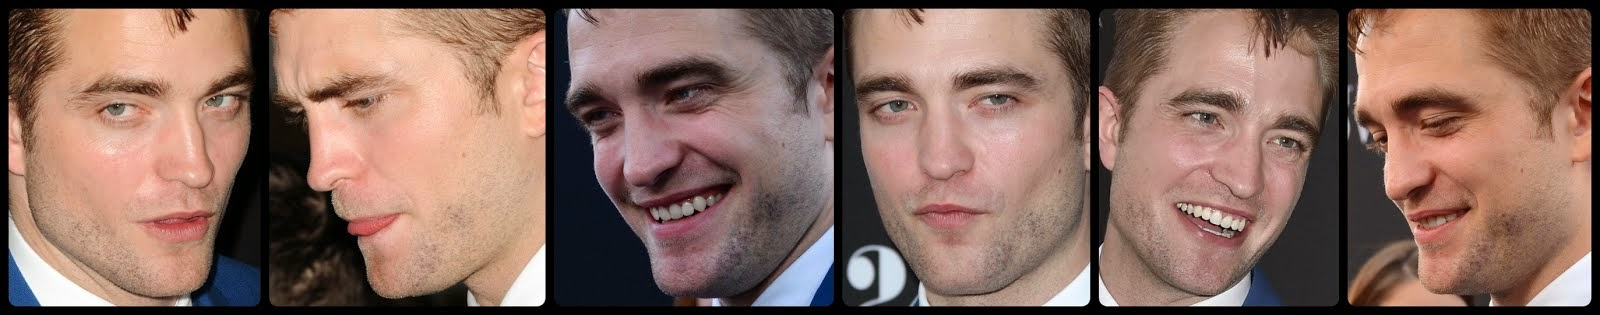 Hermosas caras del actor Robert Pattinson